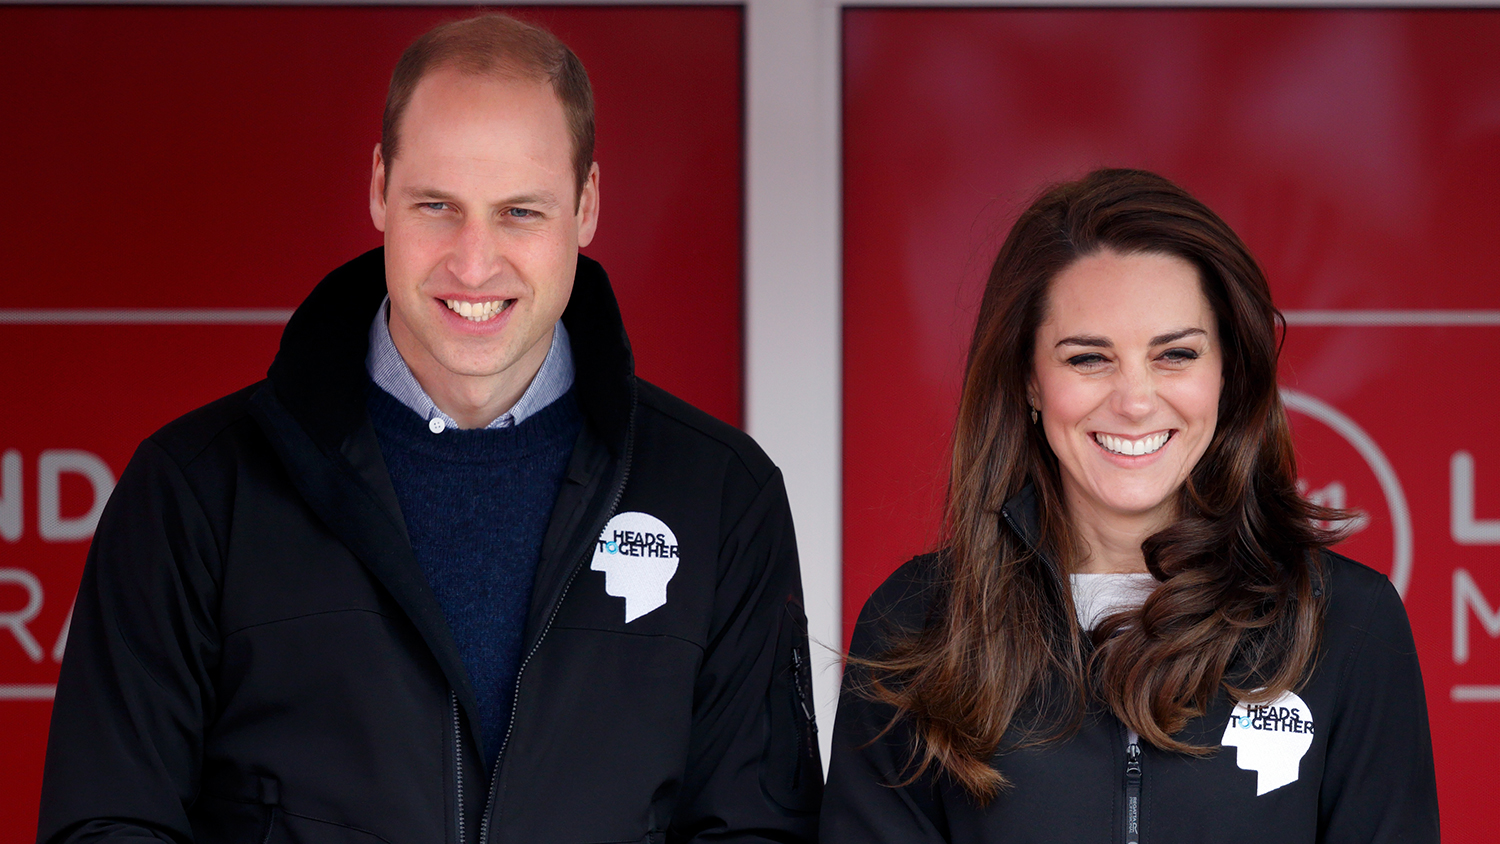 William and Duchess Kate